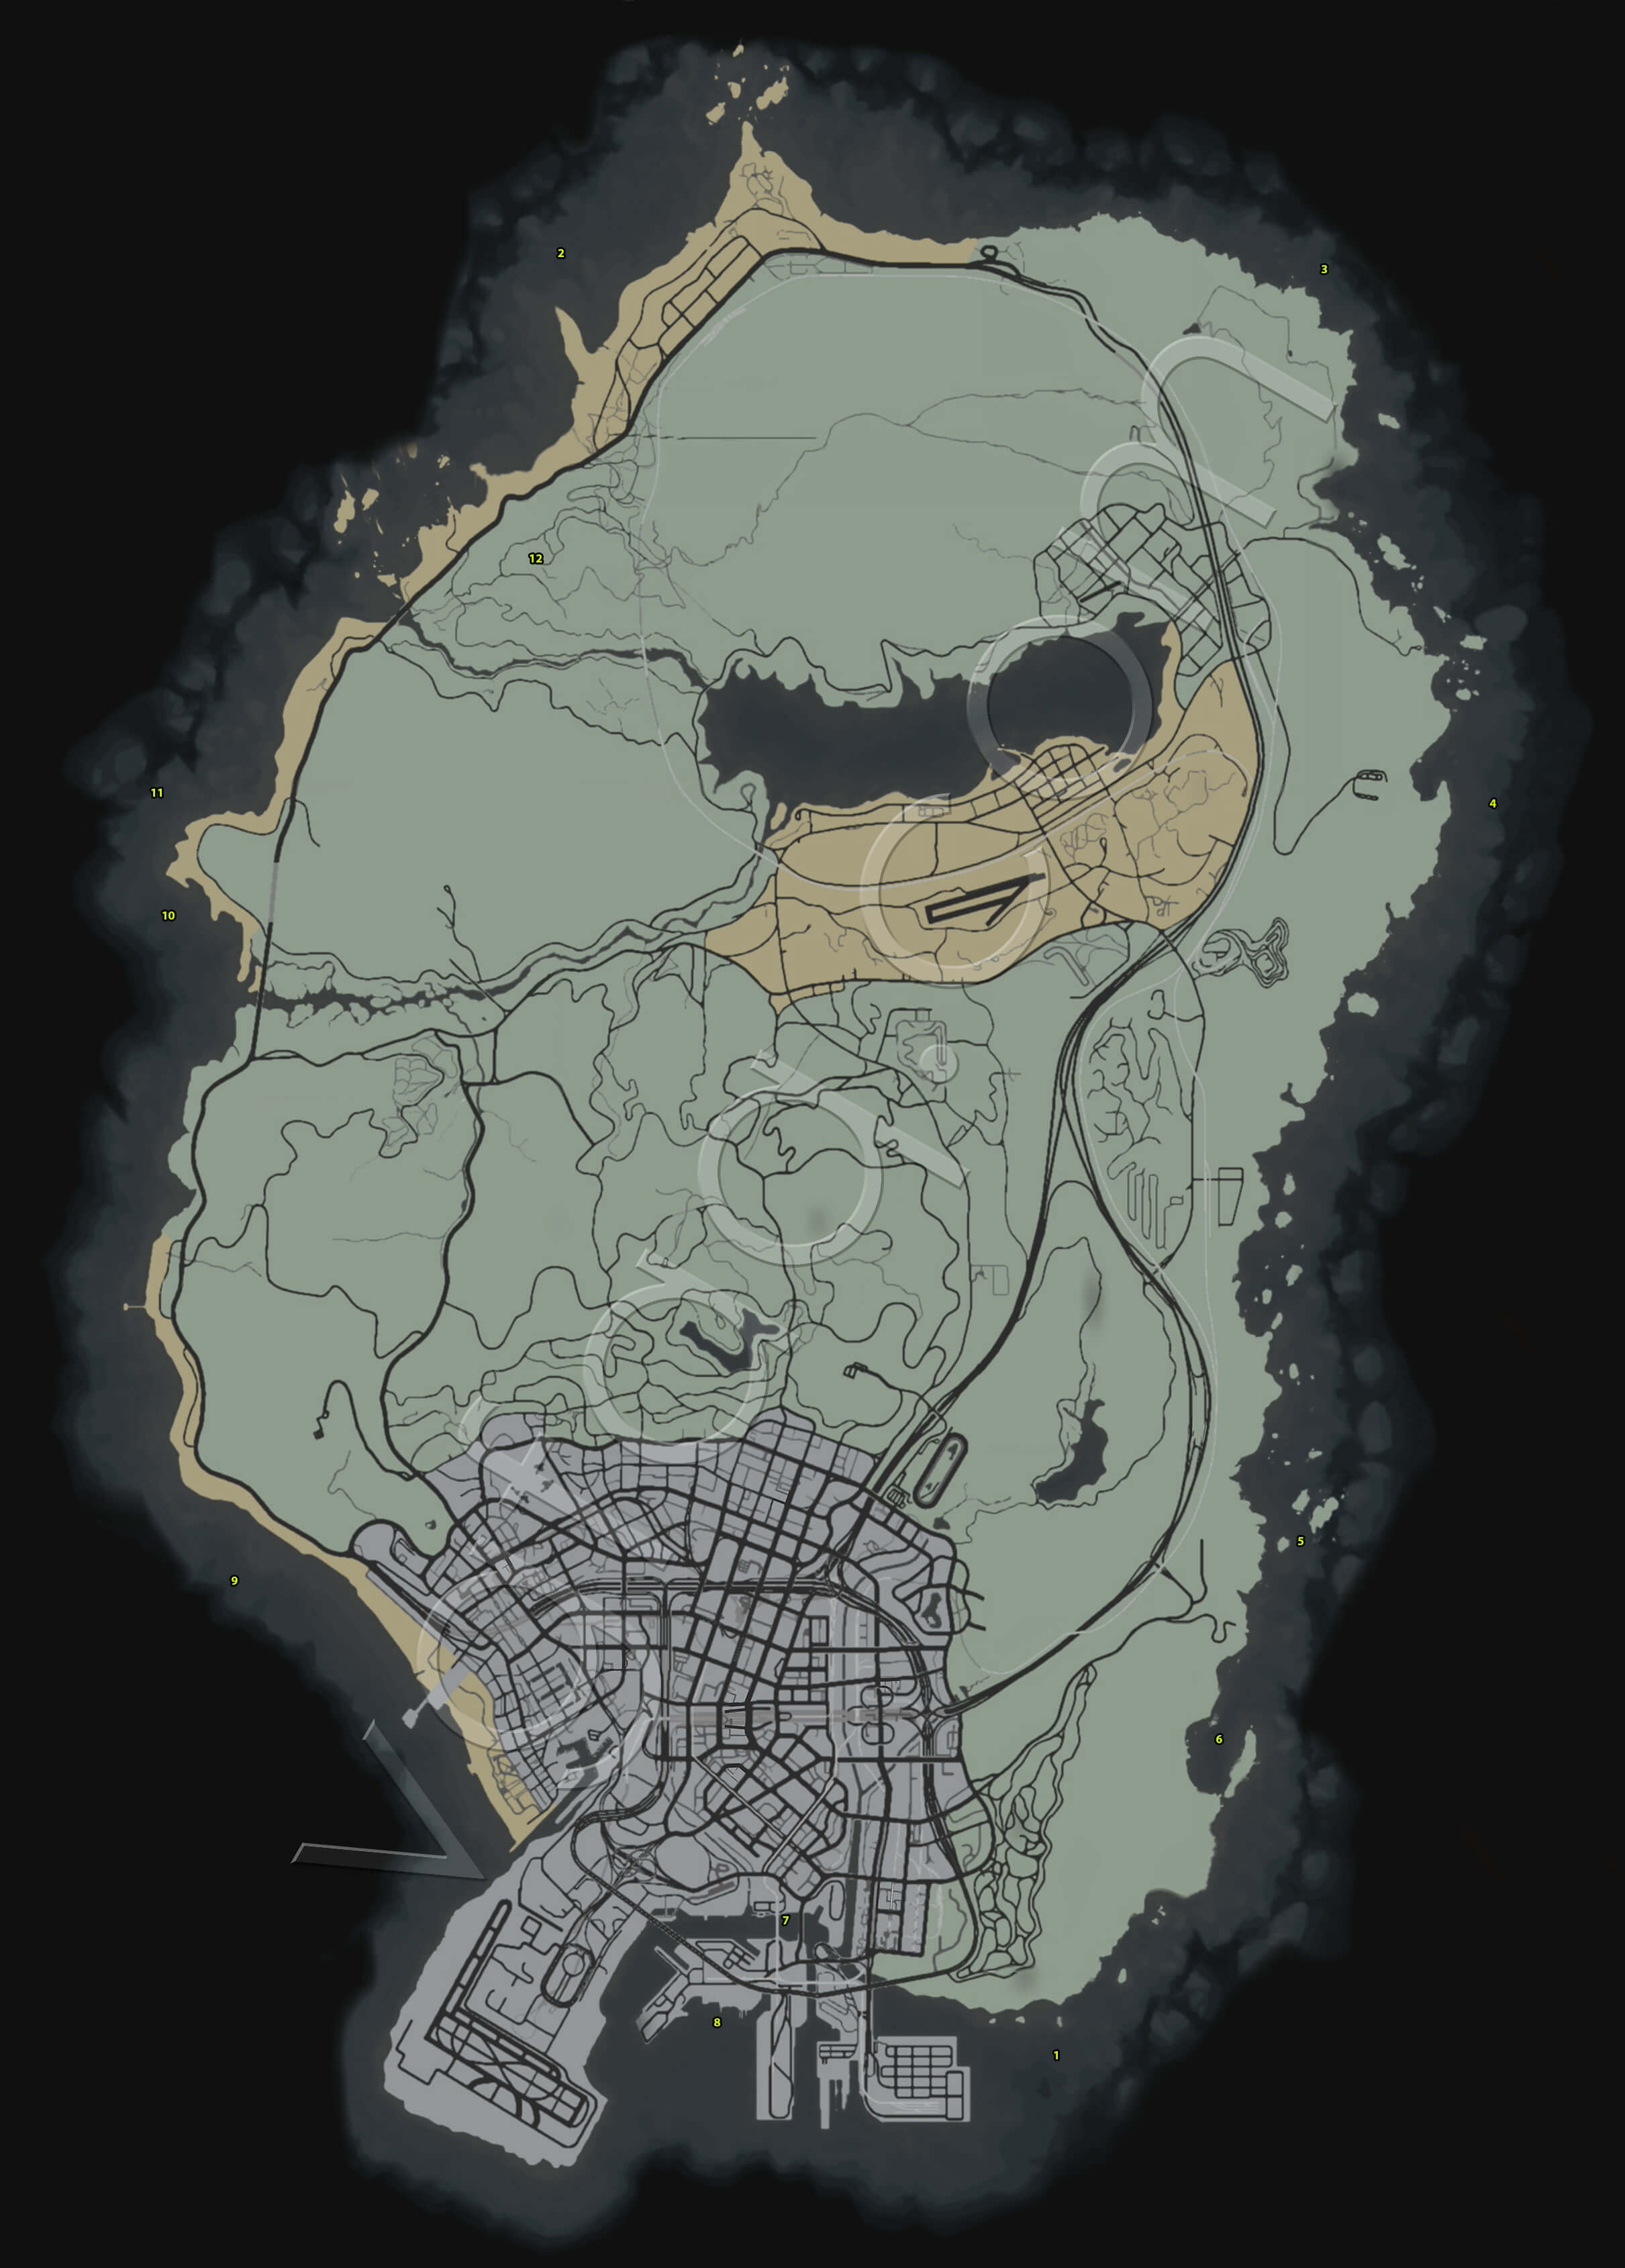 The Location Of Stash Car On Map